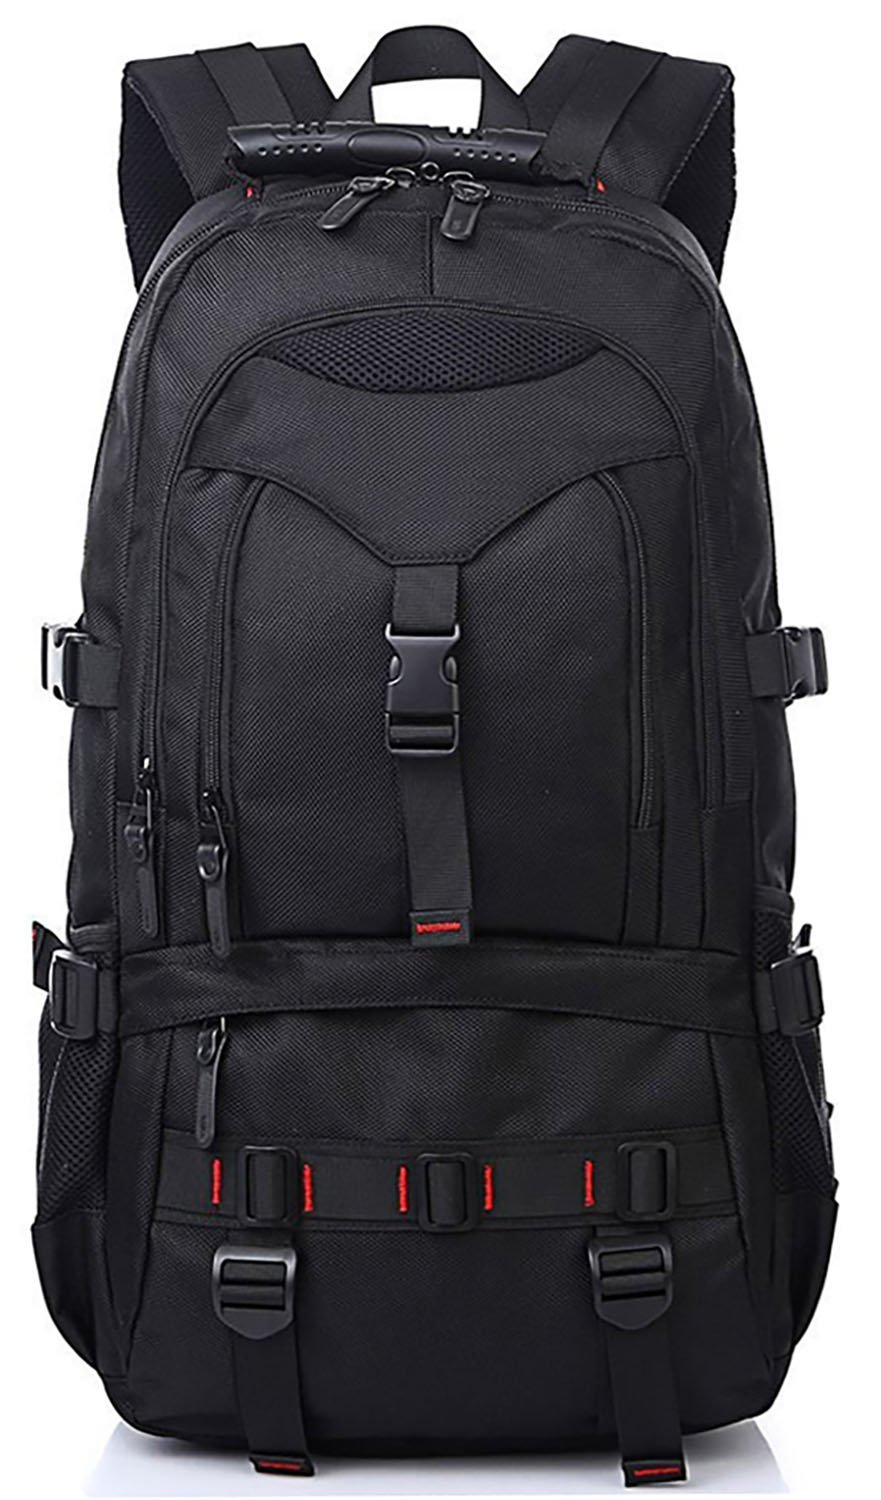 KAKA Large Laptop Backpack, Anti Theft Water Resistant Travel Backpack for Women & Men Fits 17 Inch Laptop and Notebook, Black Daypack for Outdoor Camping KAKA_2020 02